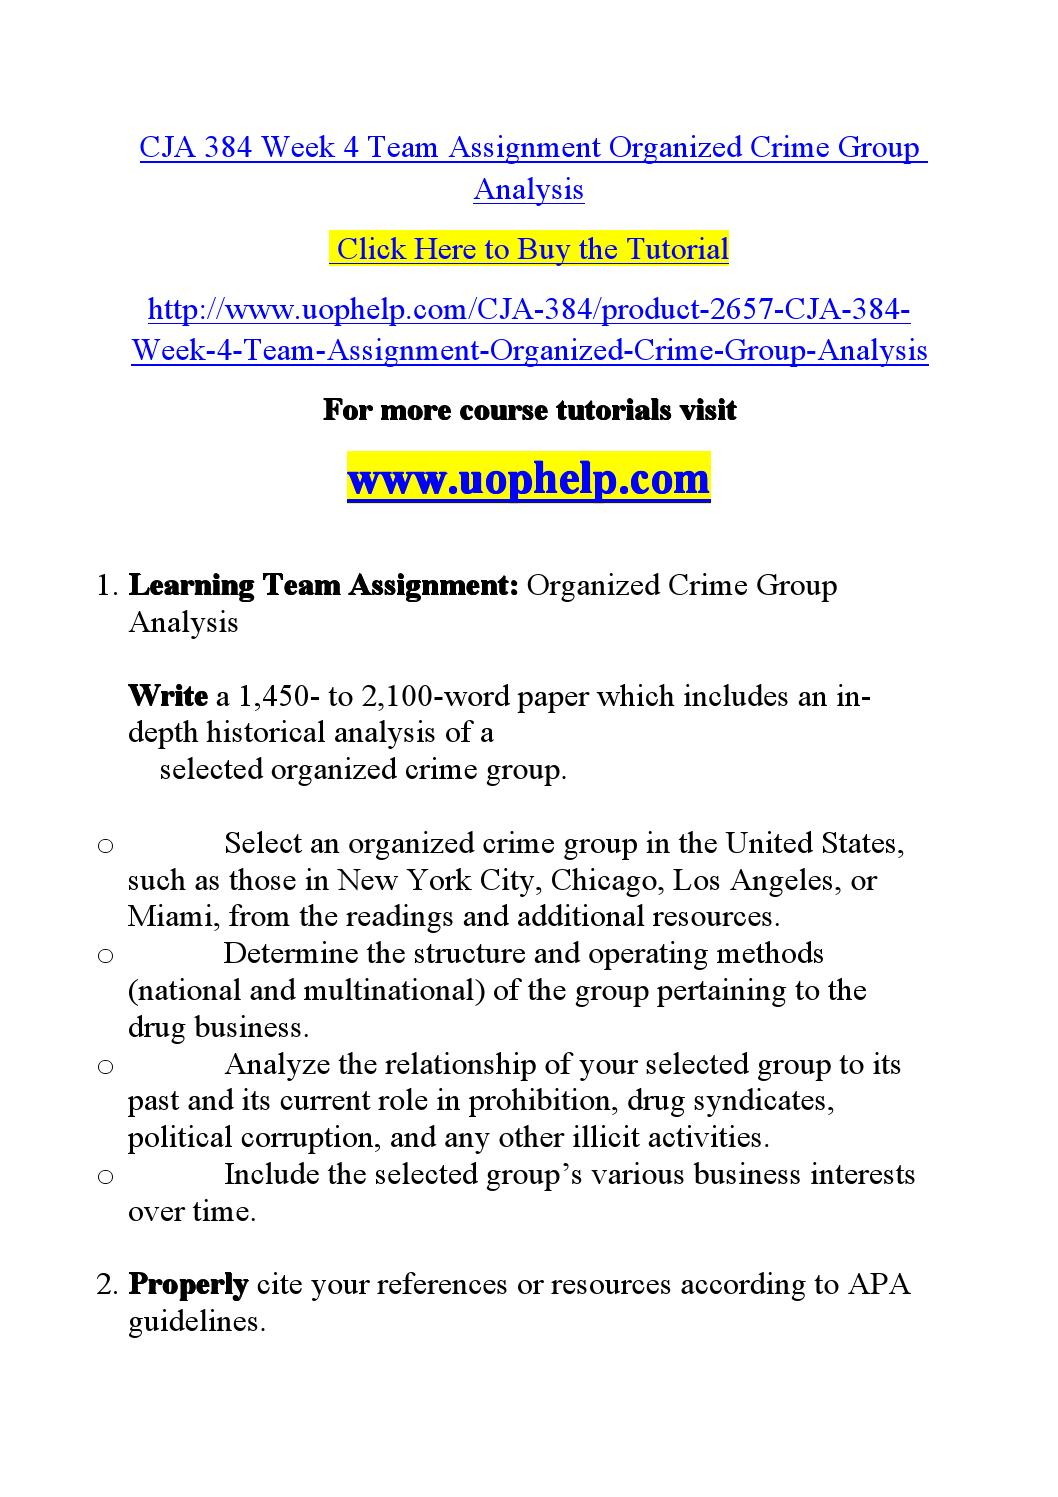 attributes of a organized crime group essay